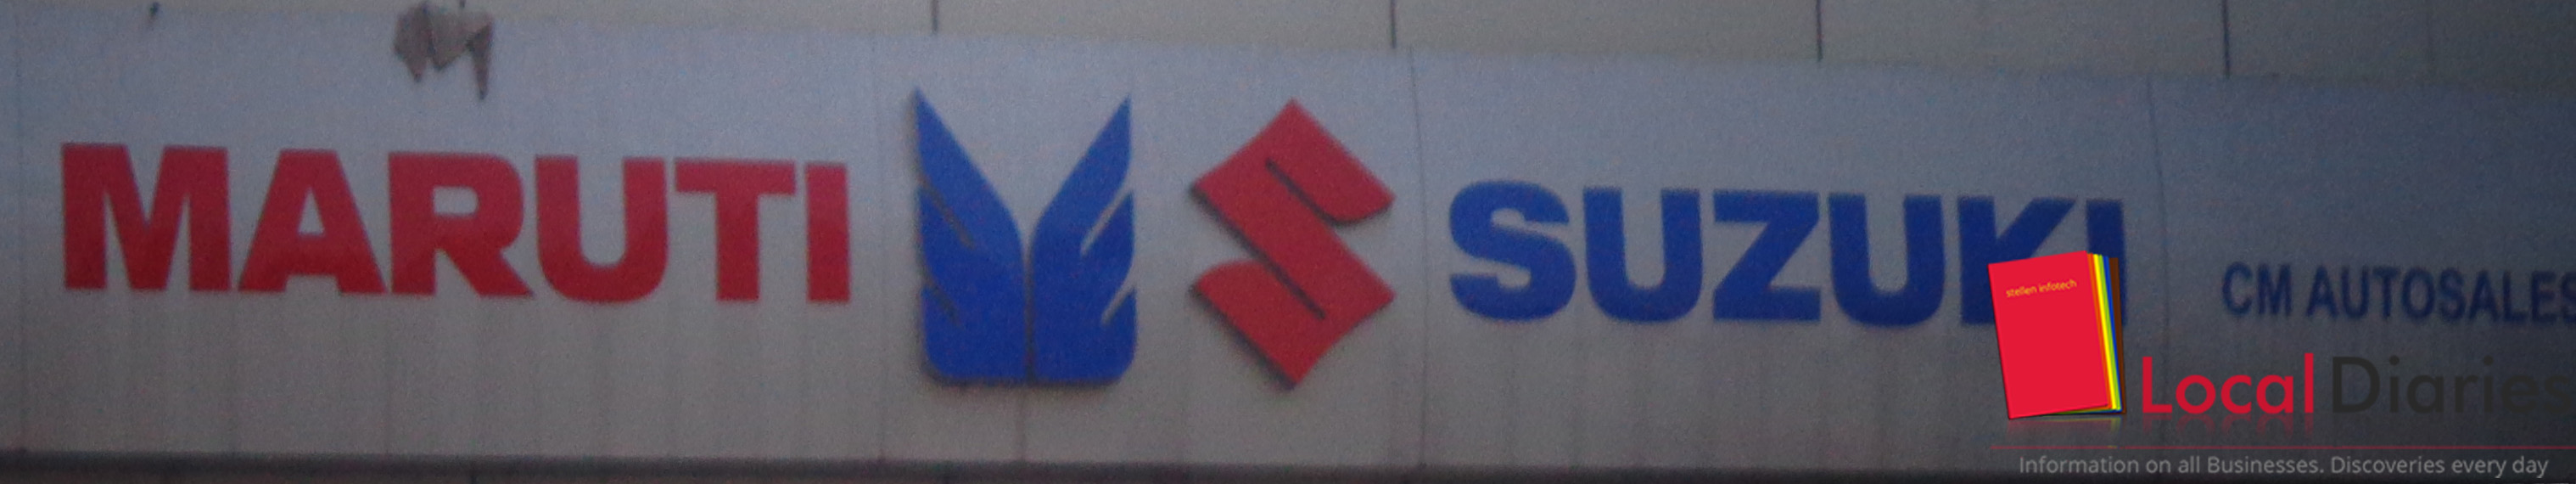 Maruti Suzuki Tricity Autos In Industrial Area Phase 02